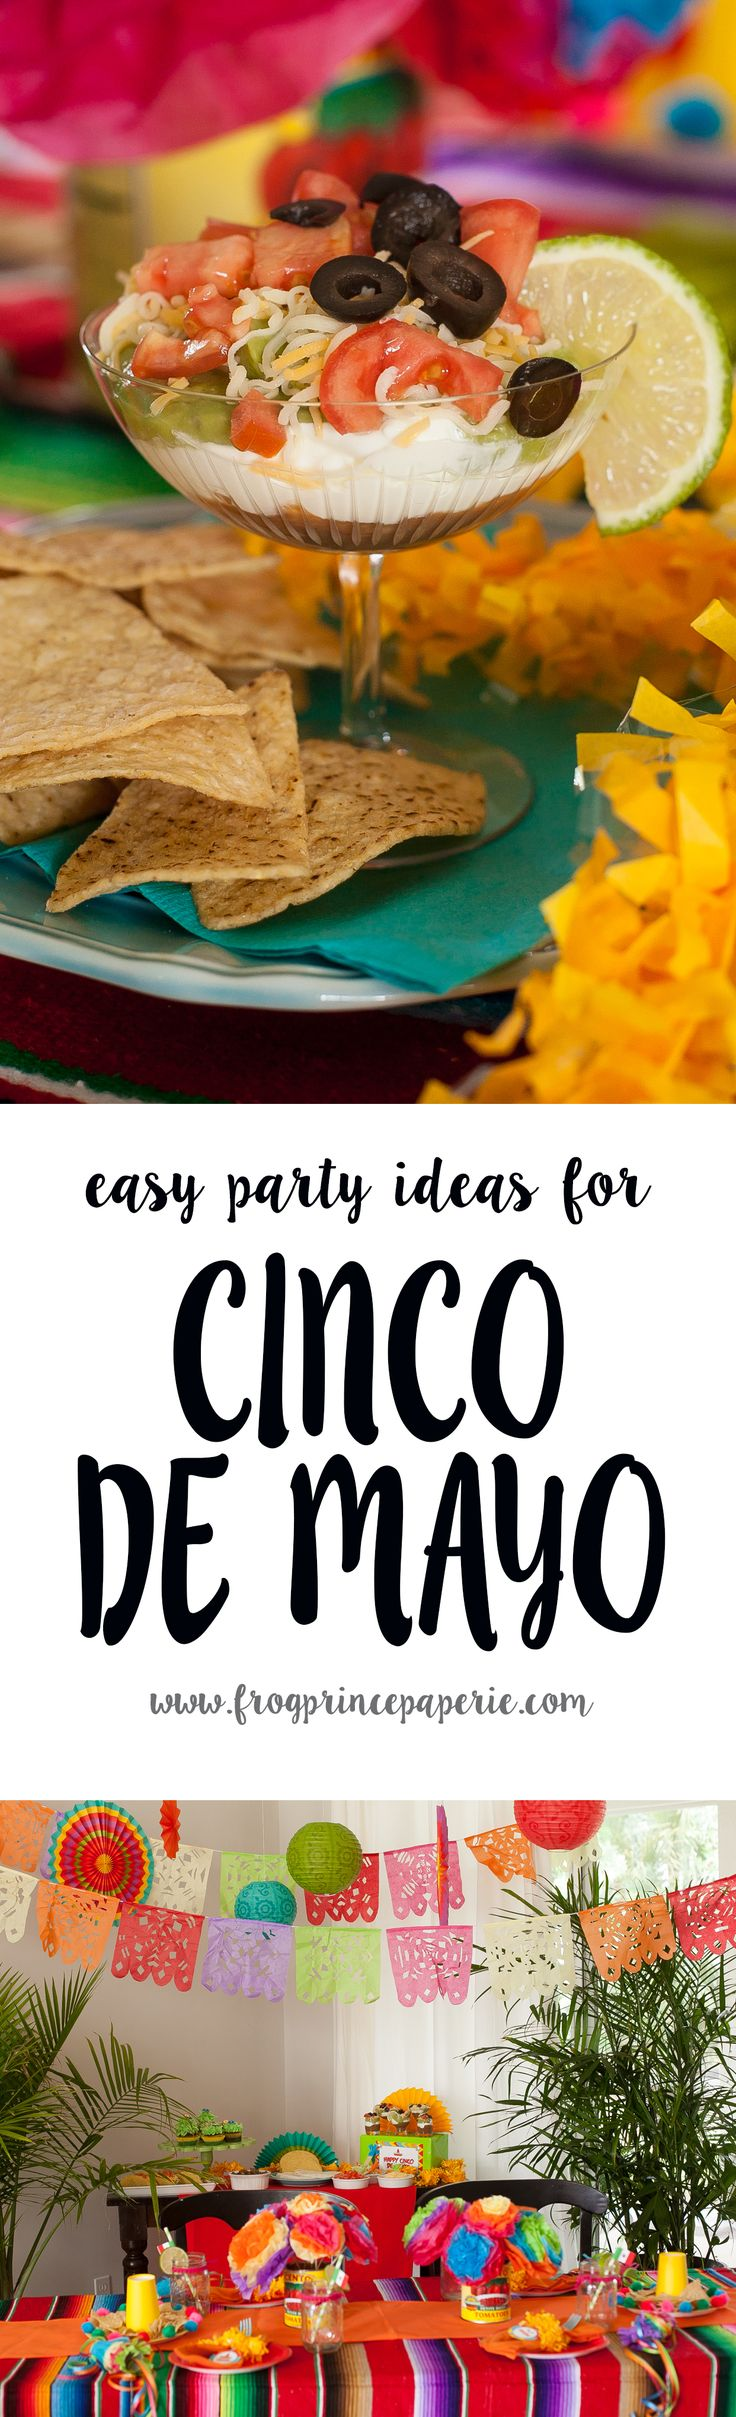 Mexican fiesta party decorating ideas hosting guide - 45 Best Fiesta Images On Pinterest Parties Mexican Fiesta And Marriage